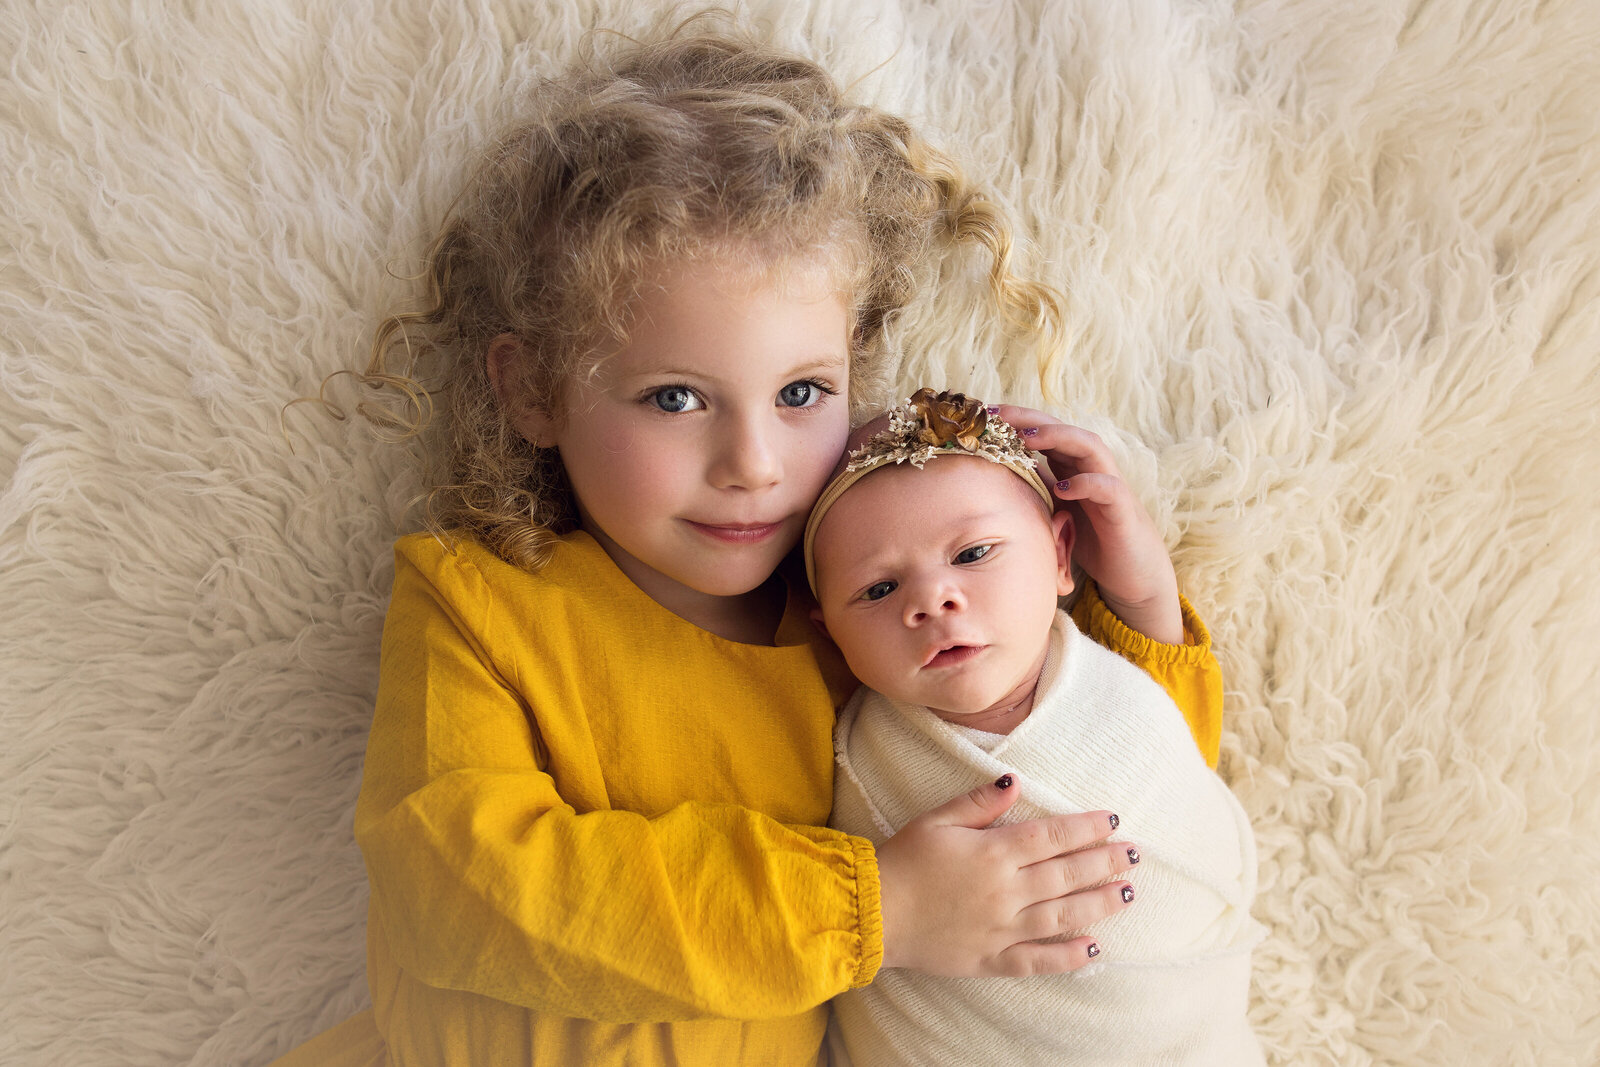 In-studio portrait of girl holding newborn baby sister